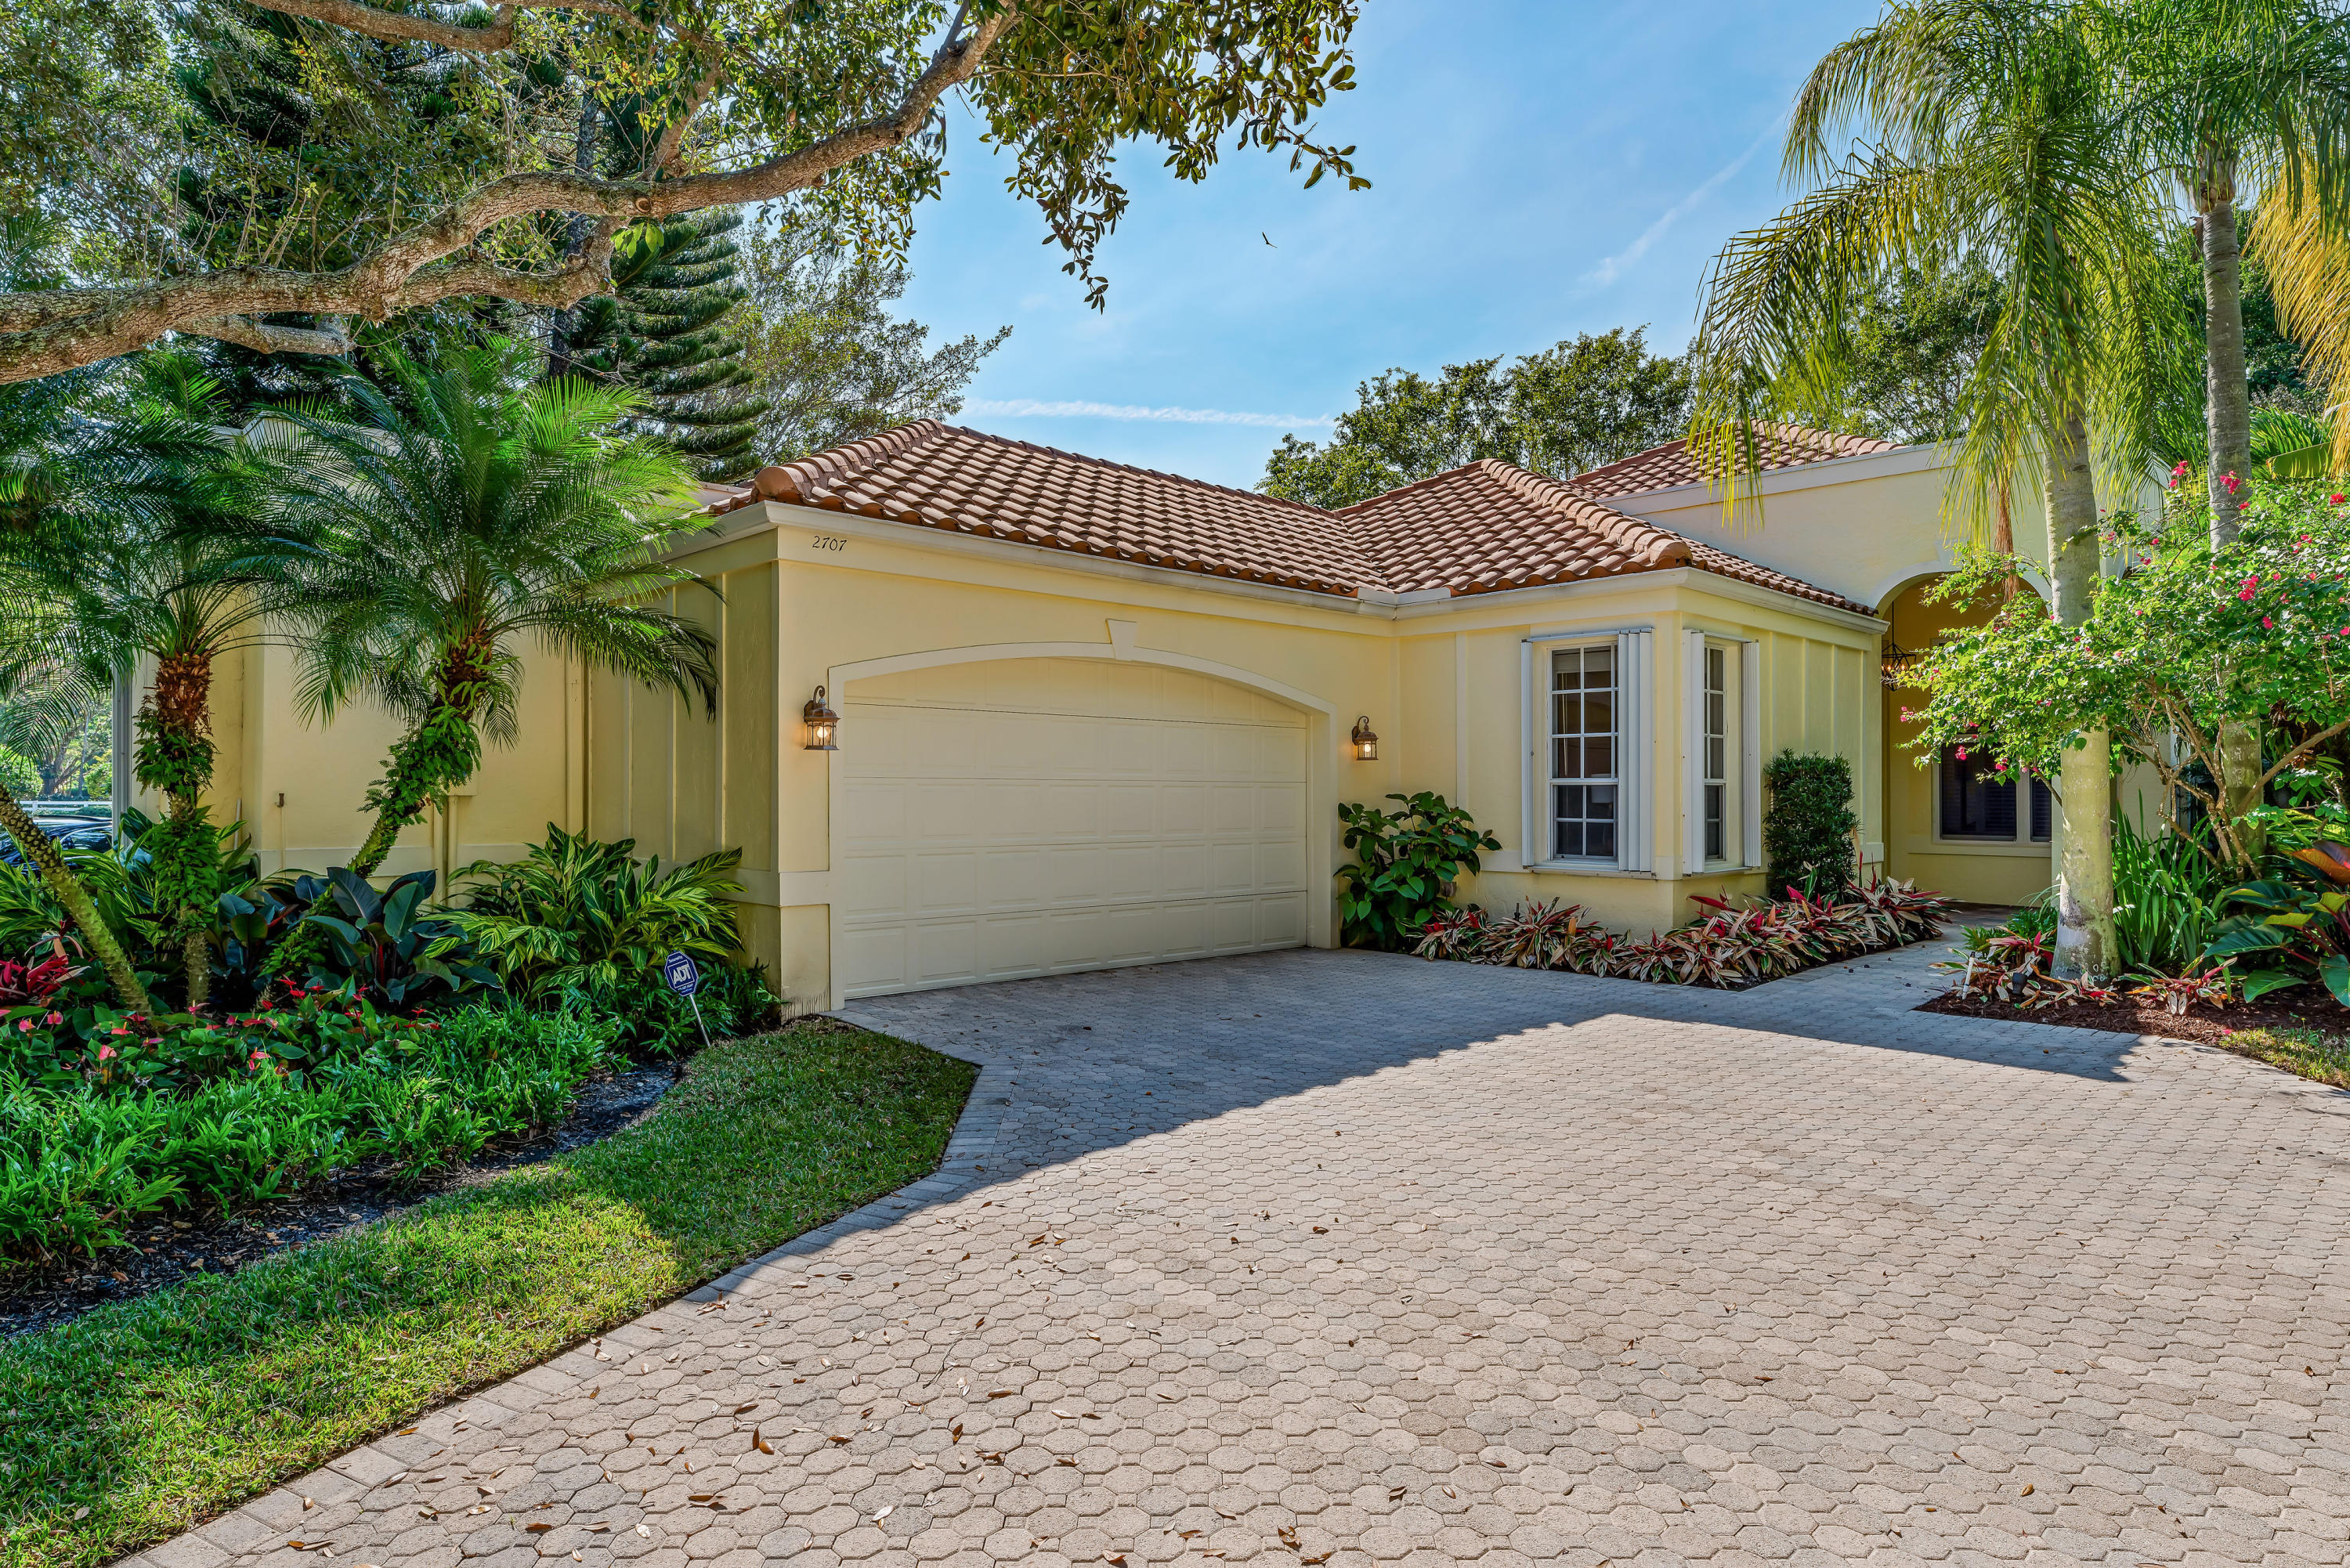 2707 Players Court - Wellington, Florida